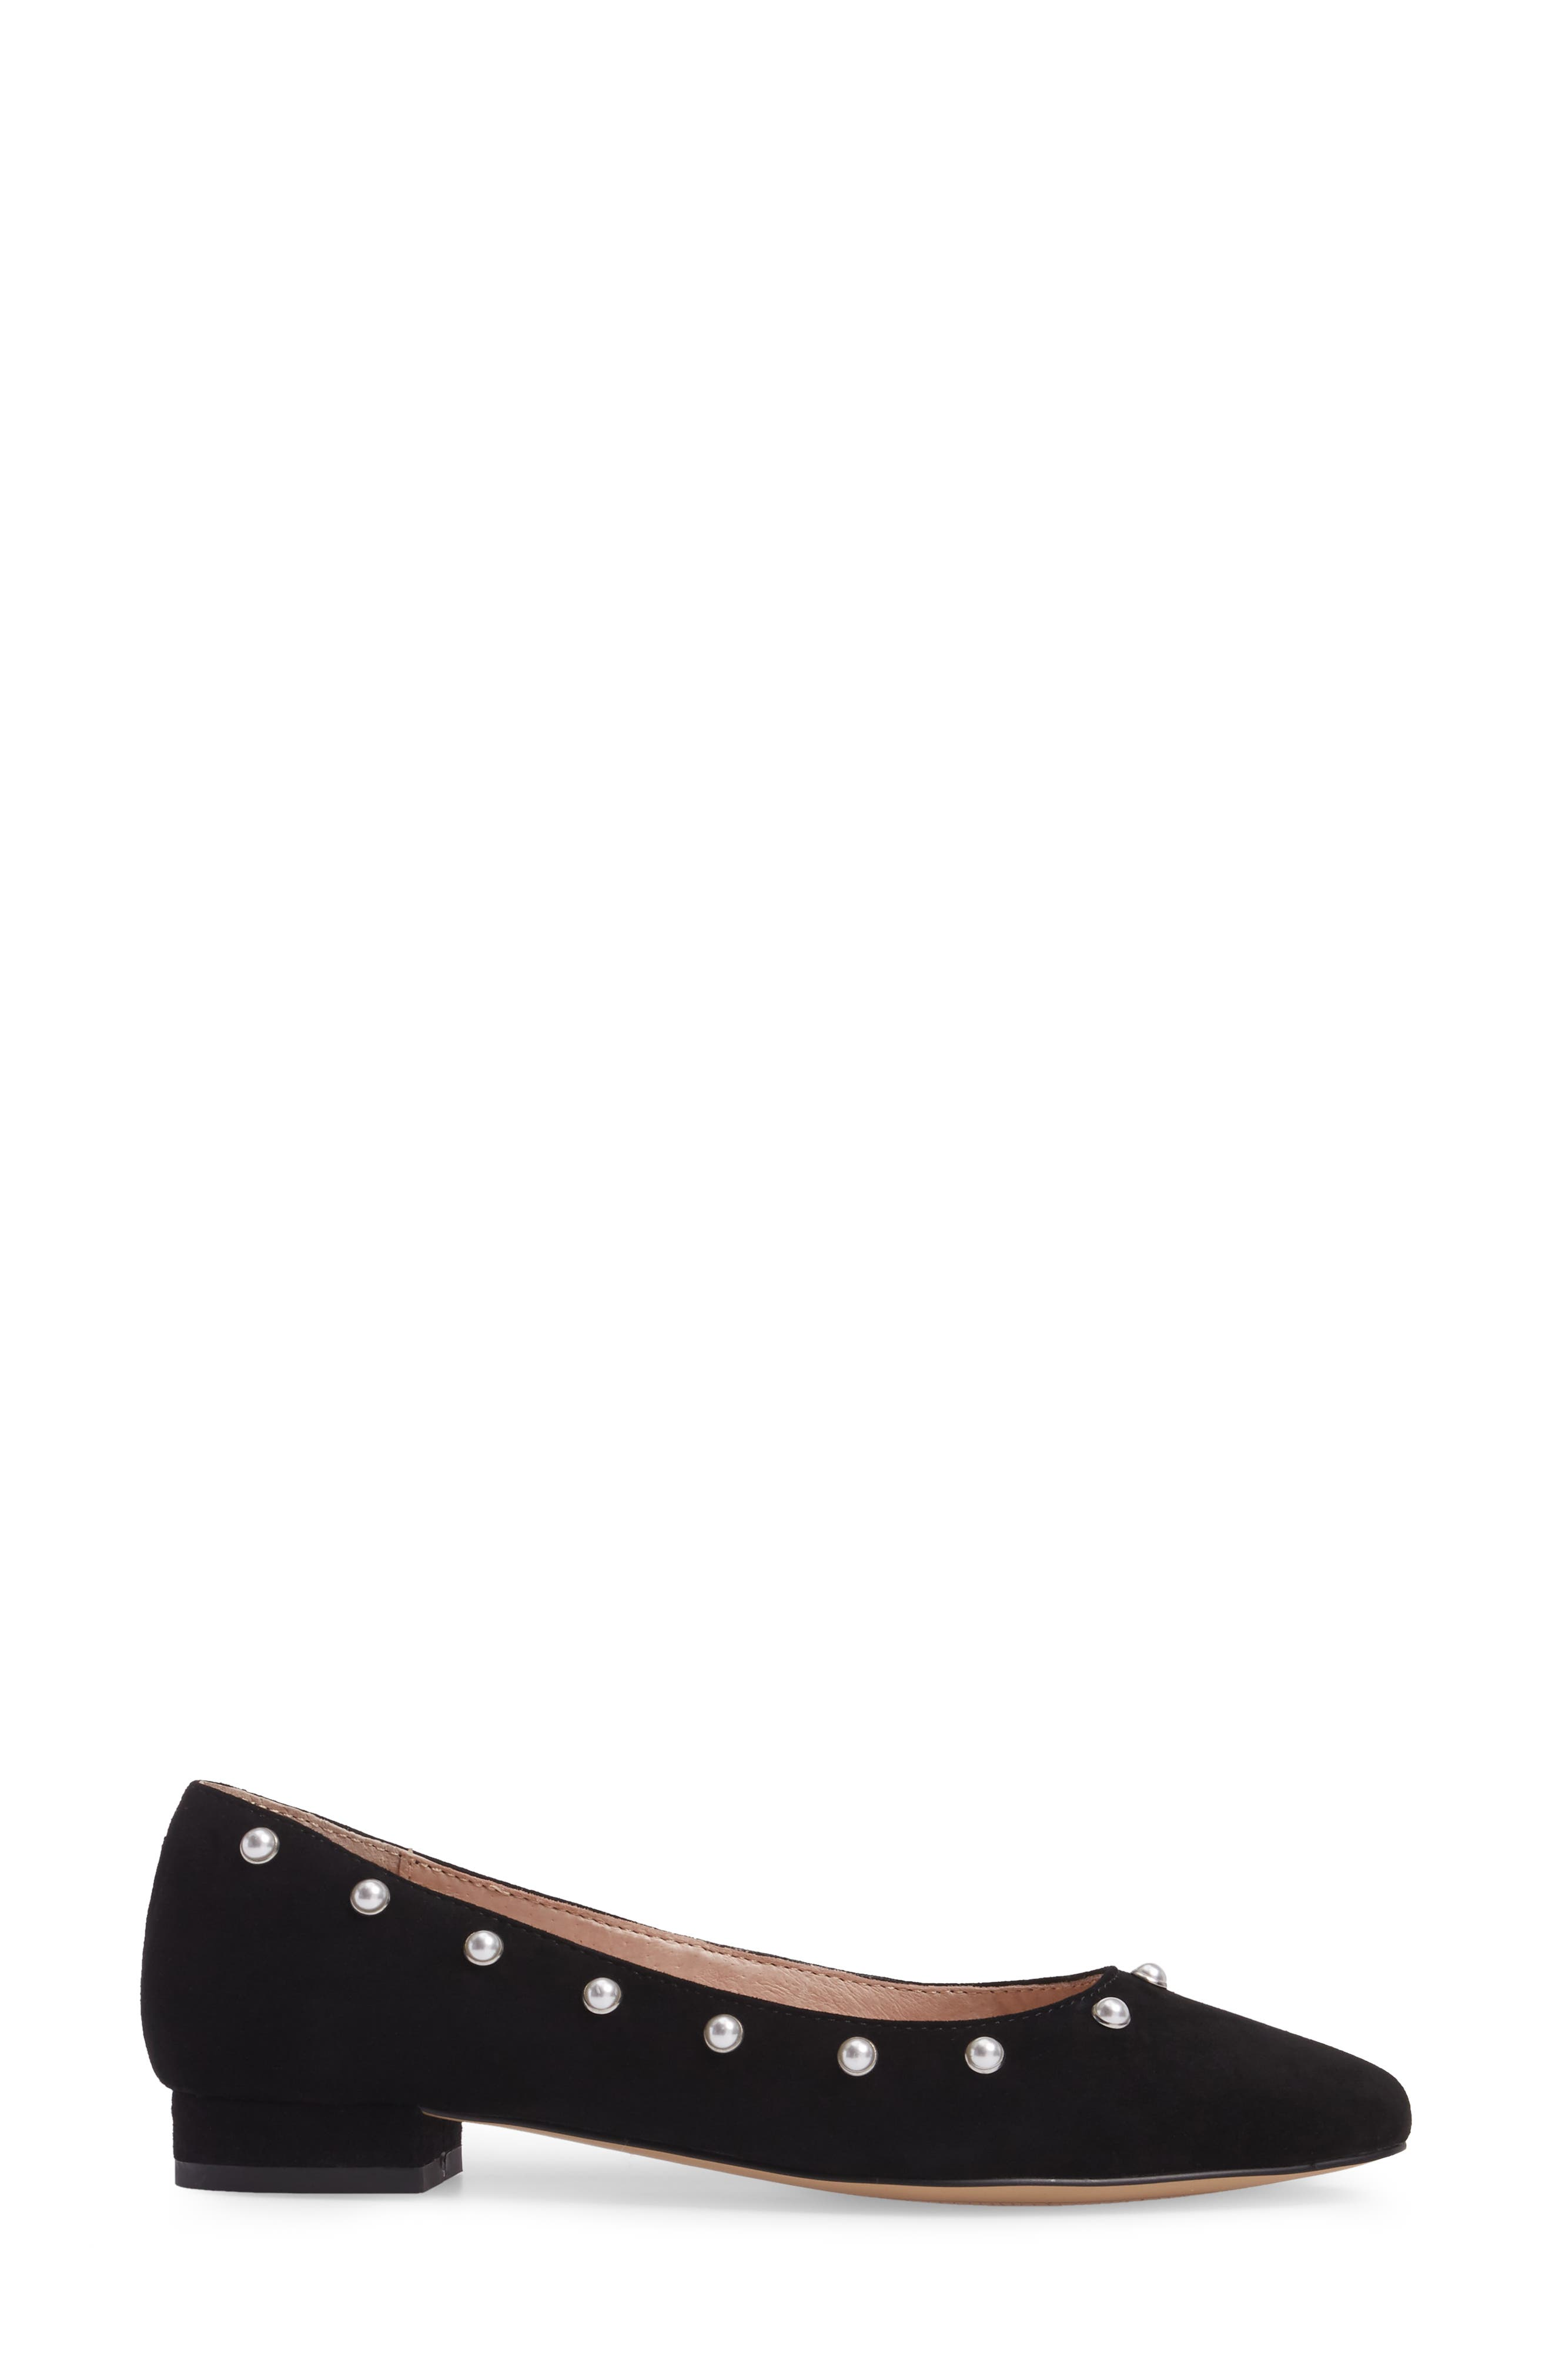 Amira Imitation Pearl Flat,                             Alternate thumbnail 3, color,                             BLACK SUEDE